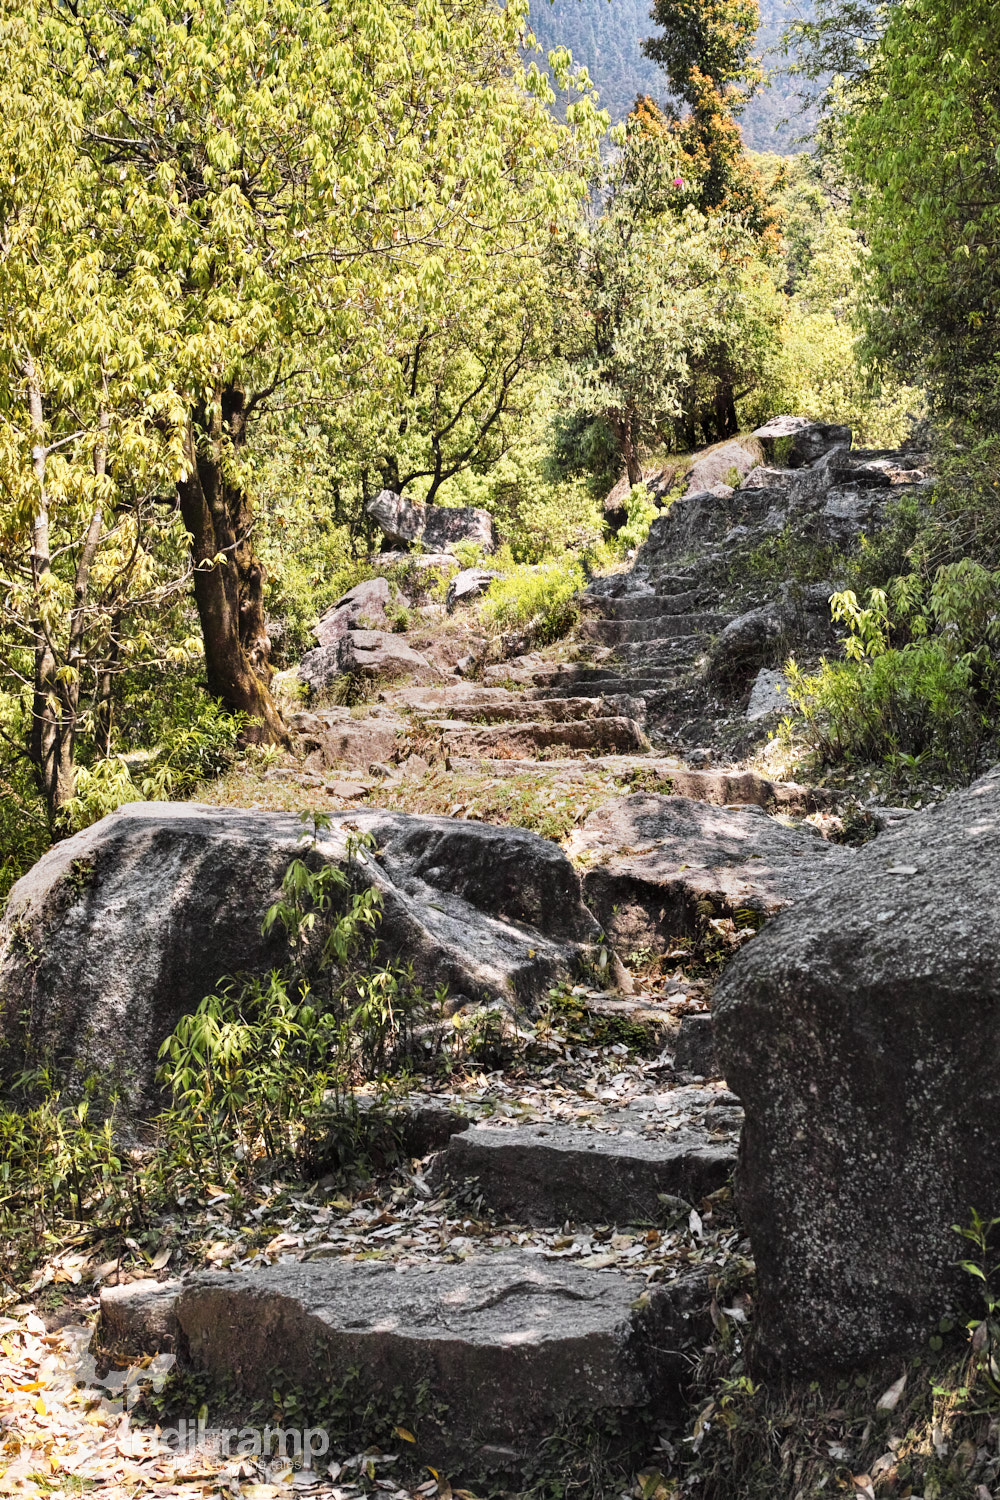 The path undulates between a level stone path and carved steps